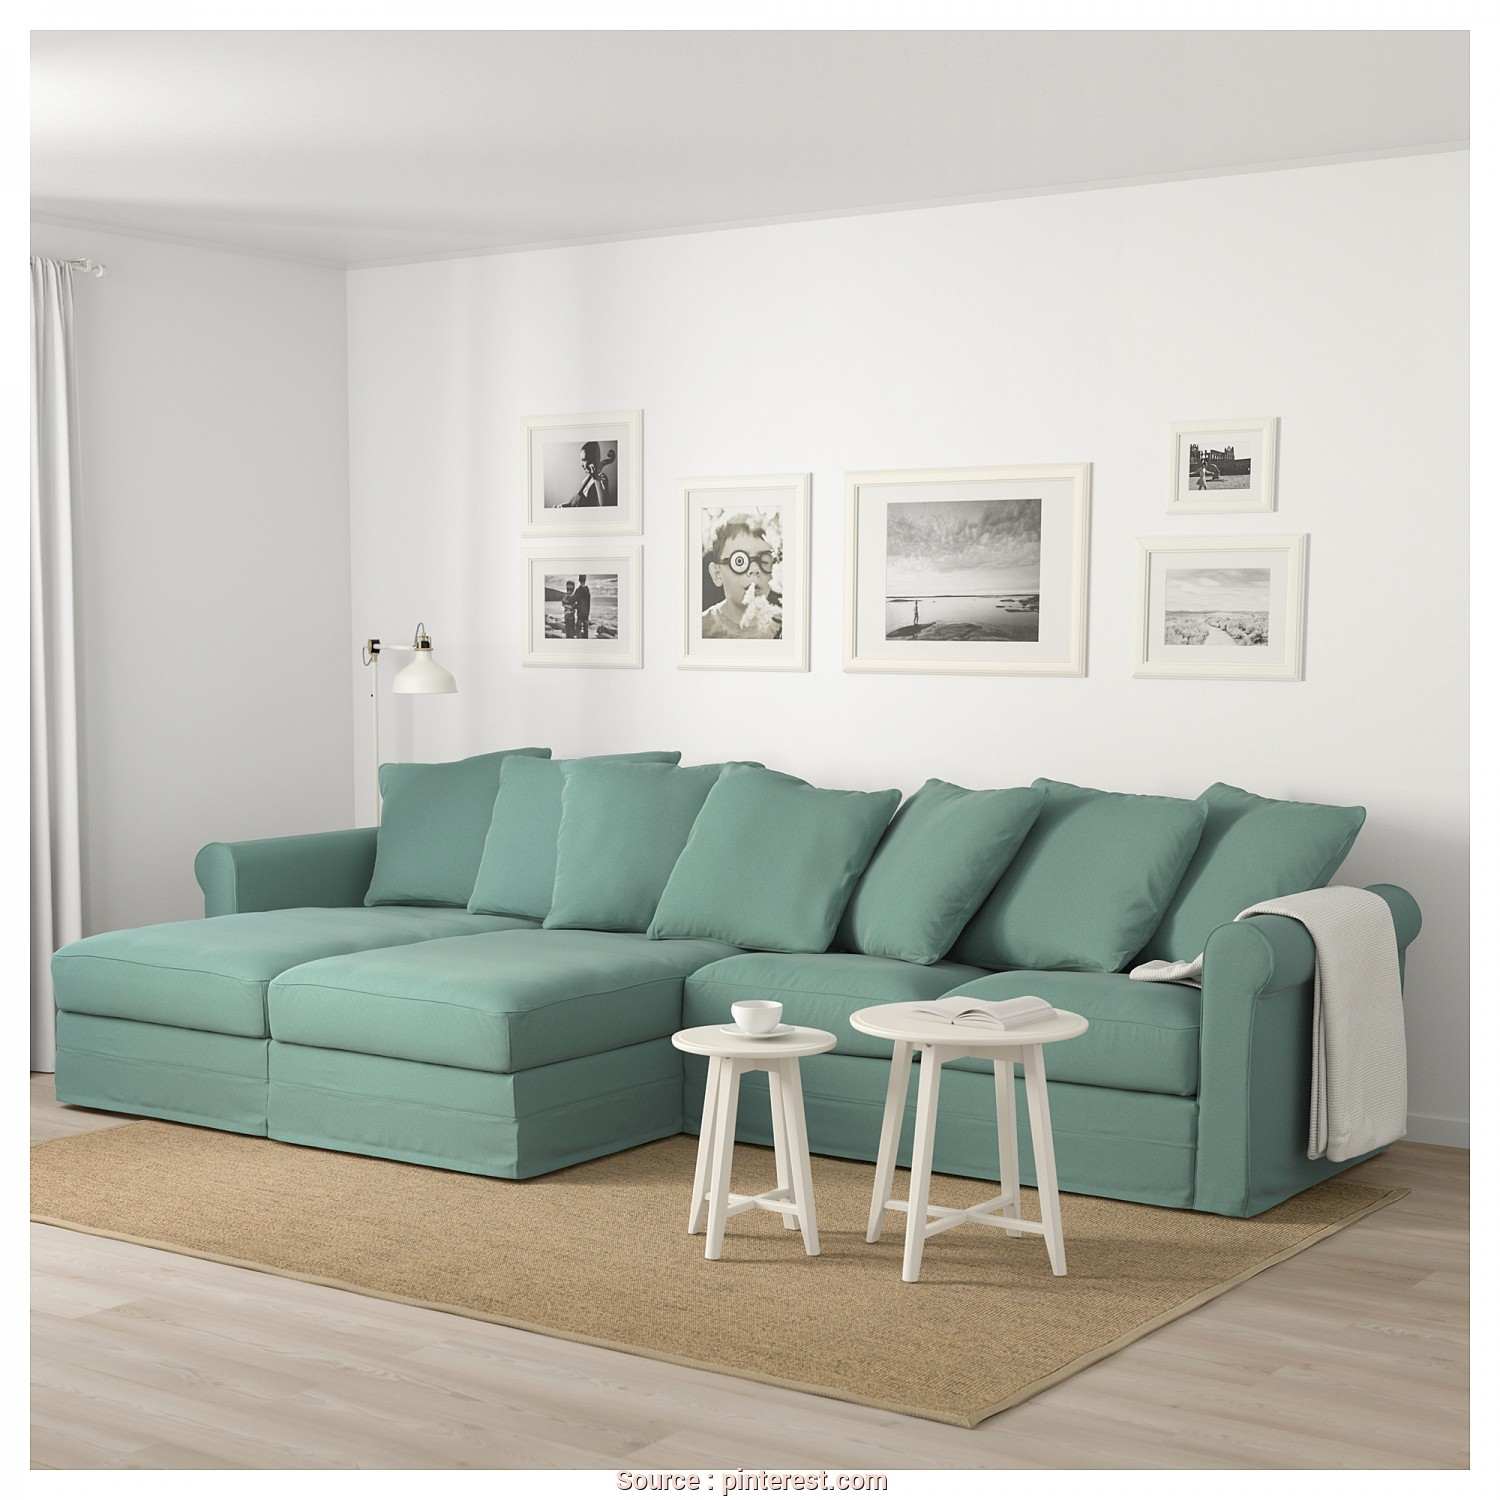 Gronlid Divano 3 Posti Maestoso Ikea GrÖnlid Sectional 4 Seat With Chaise Ljungen Light - Divano Reclinabile Ikea